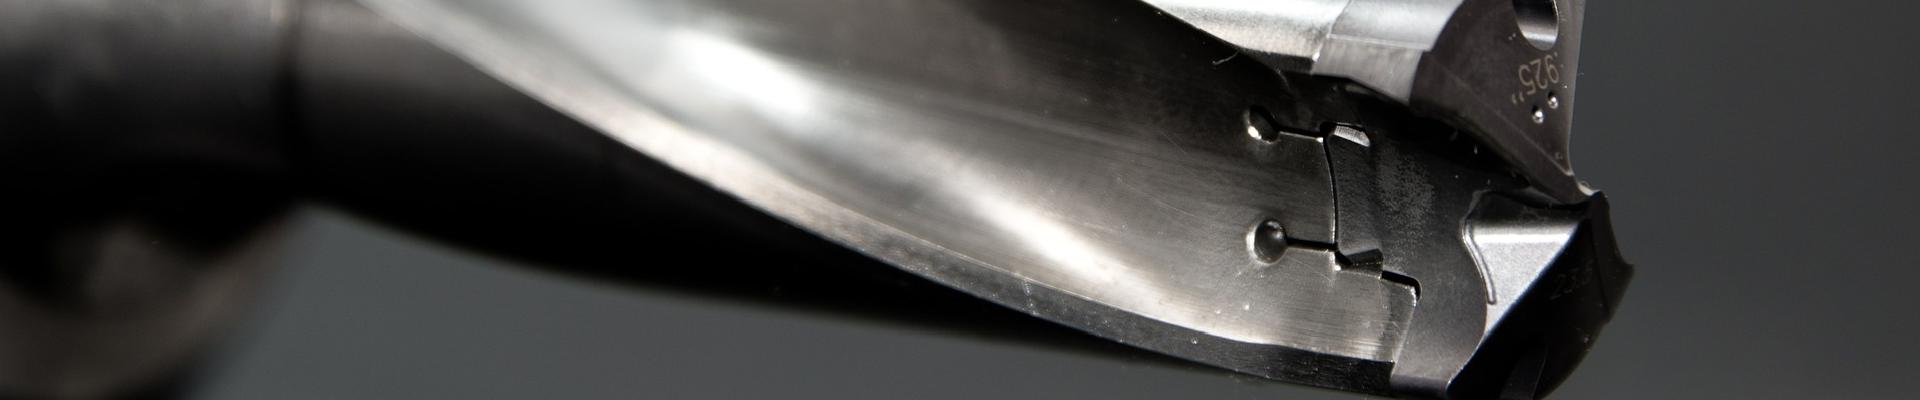 Our Manufacturing Process Part II